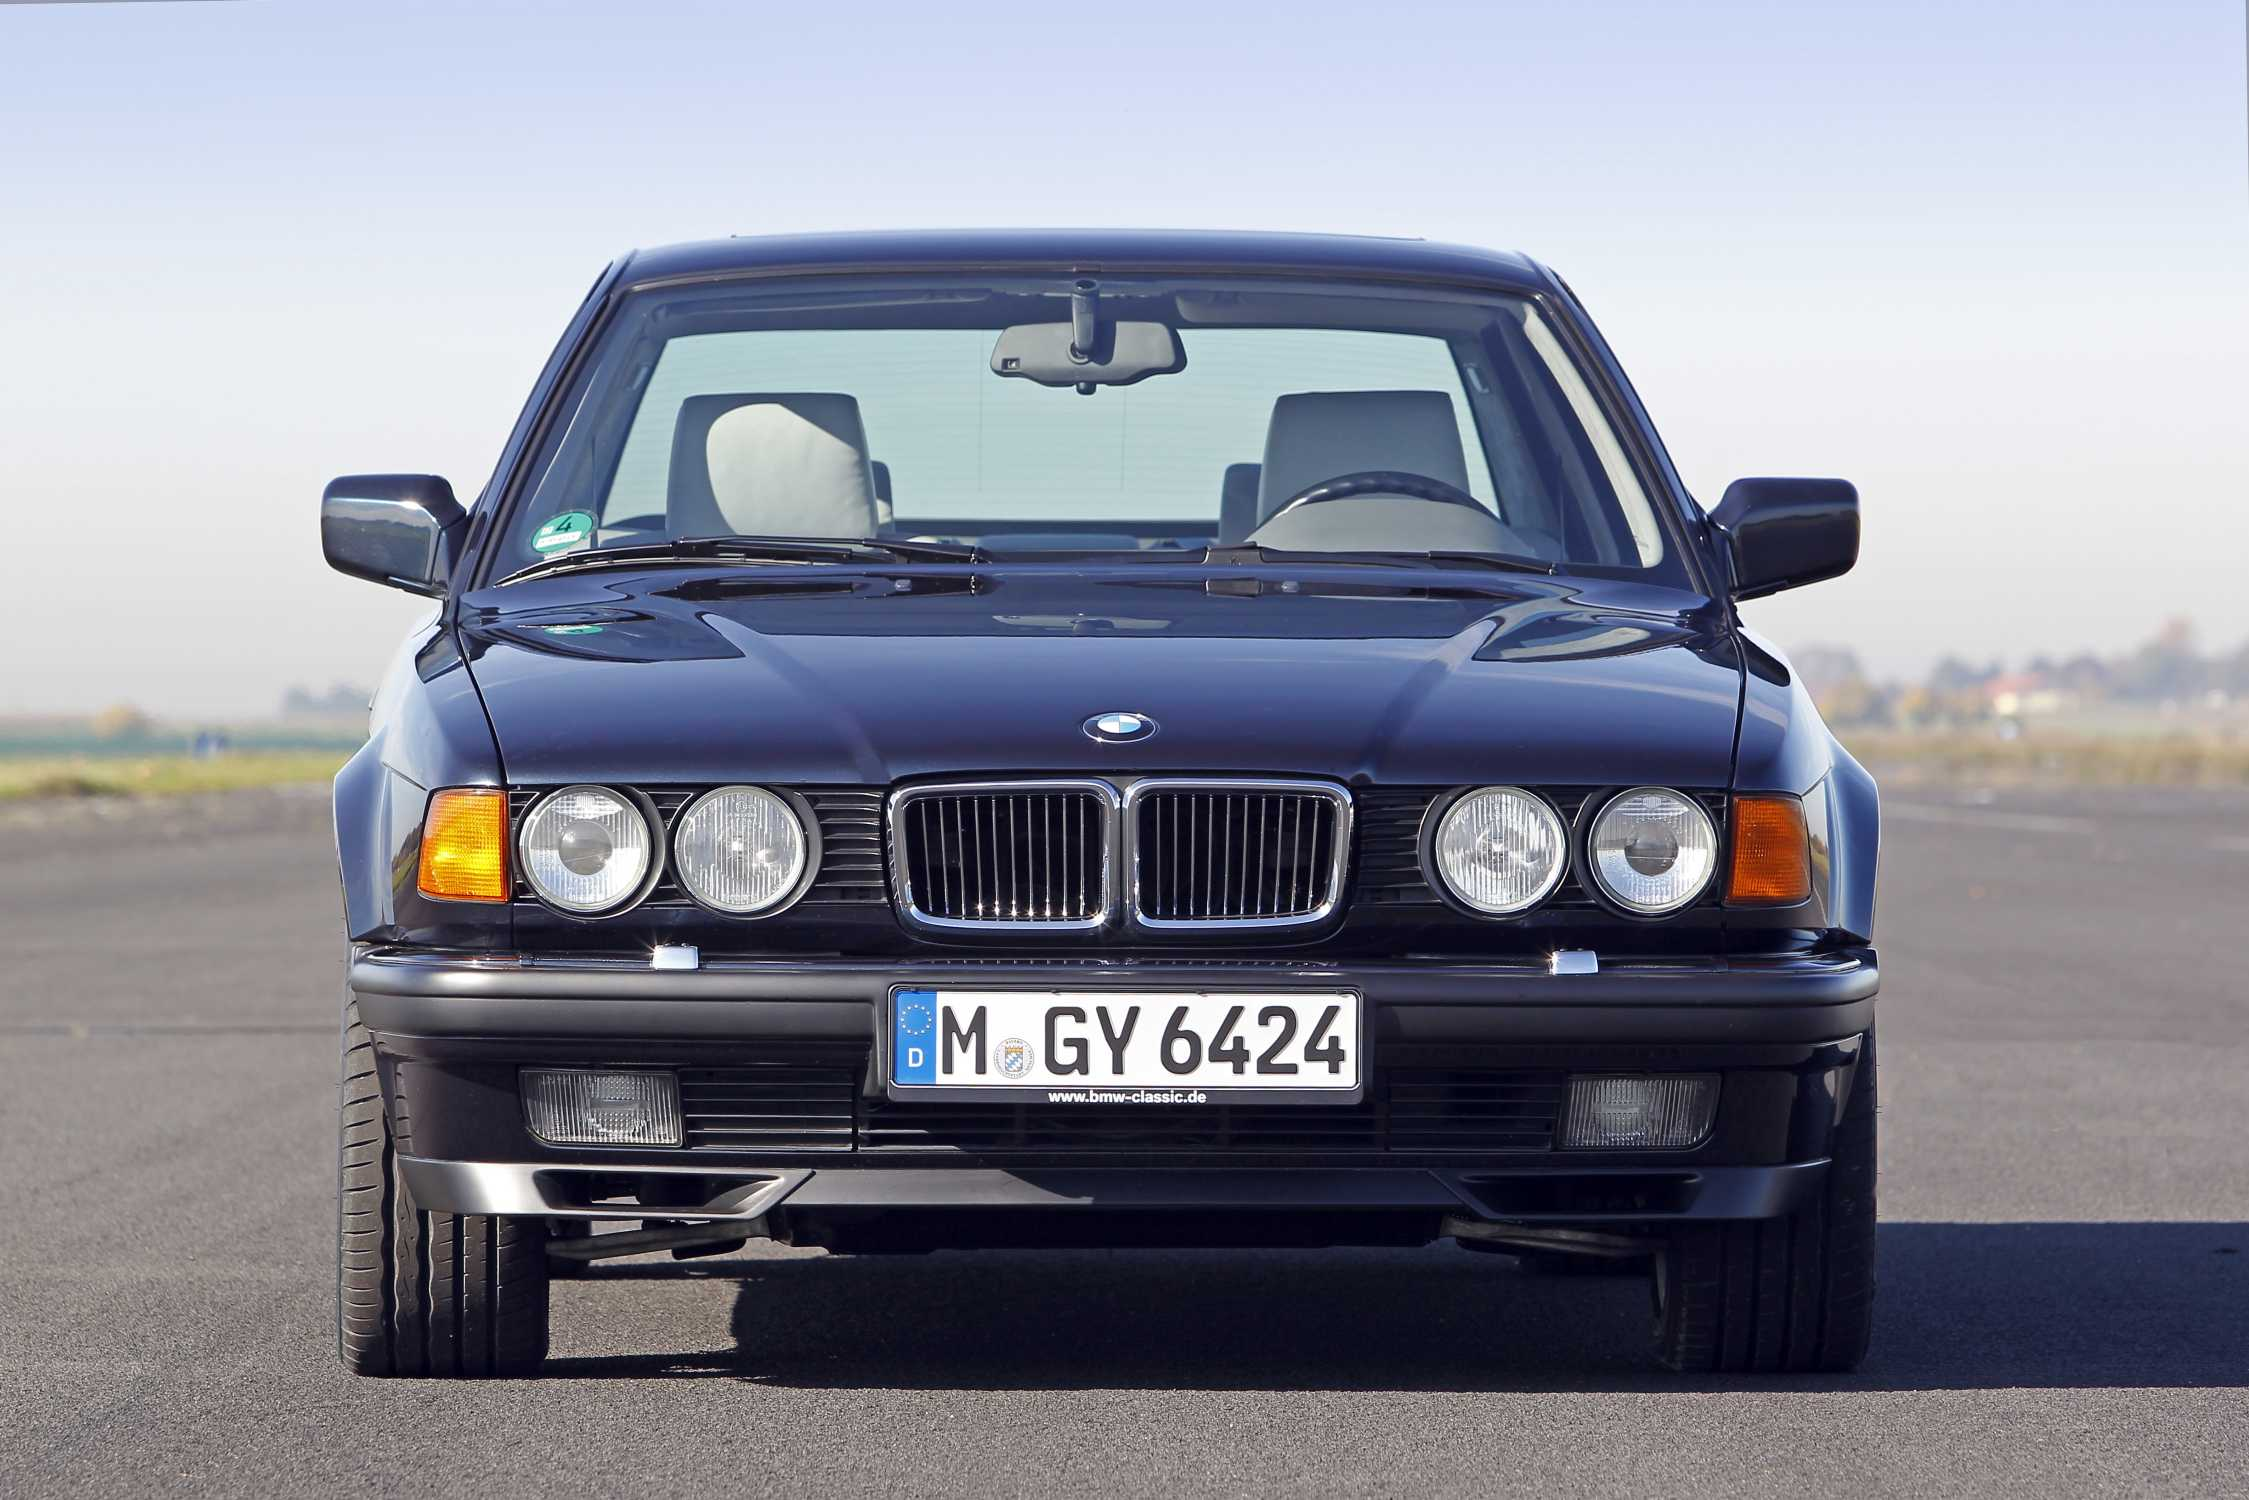 25 years of BMW 12cylinder engines setting new standards in the